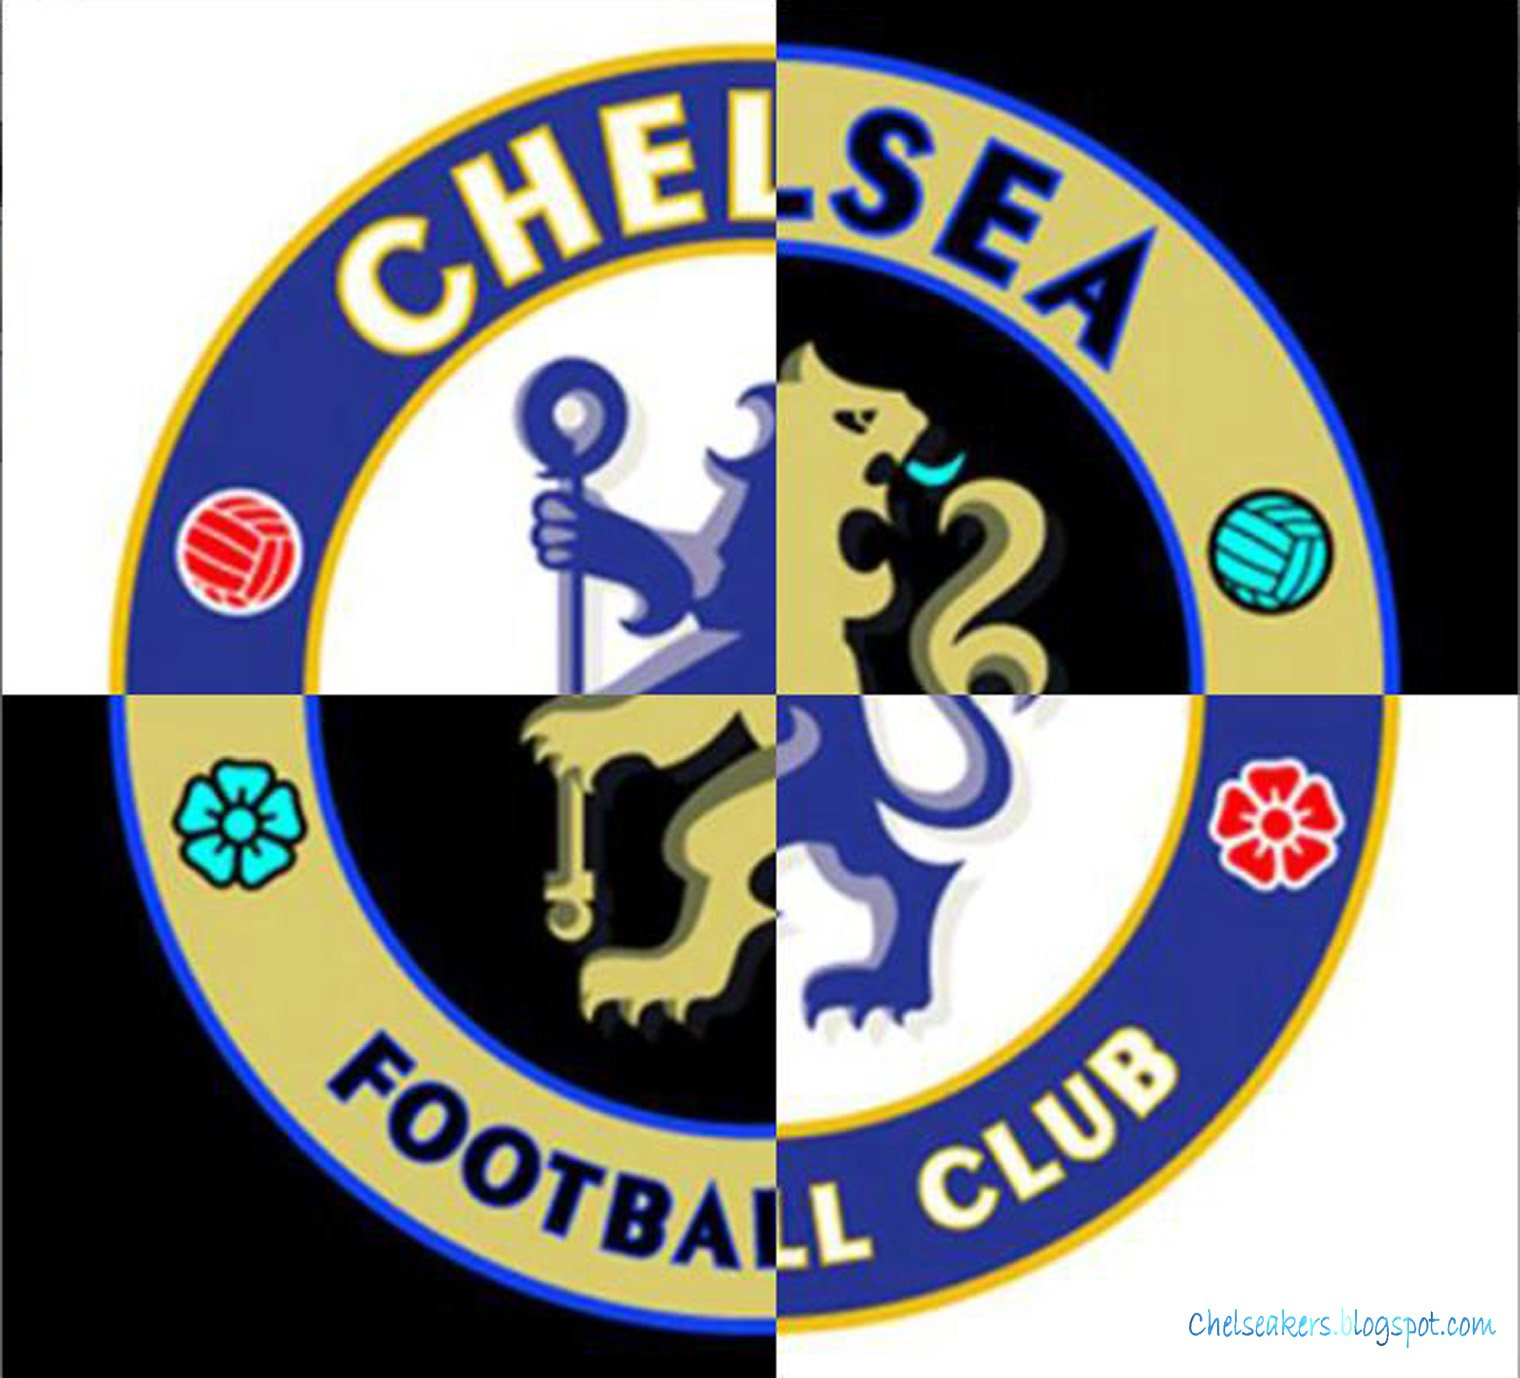 [75+] Chelsea Fc Logo Wallpaper On WallpaperSafari